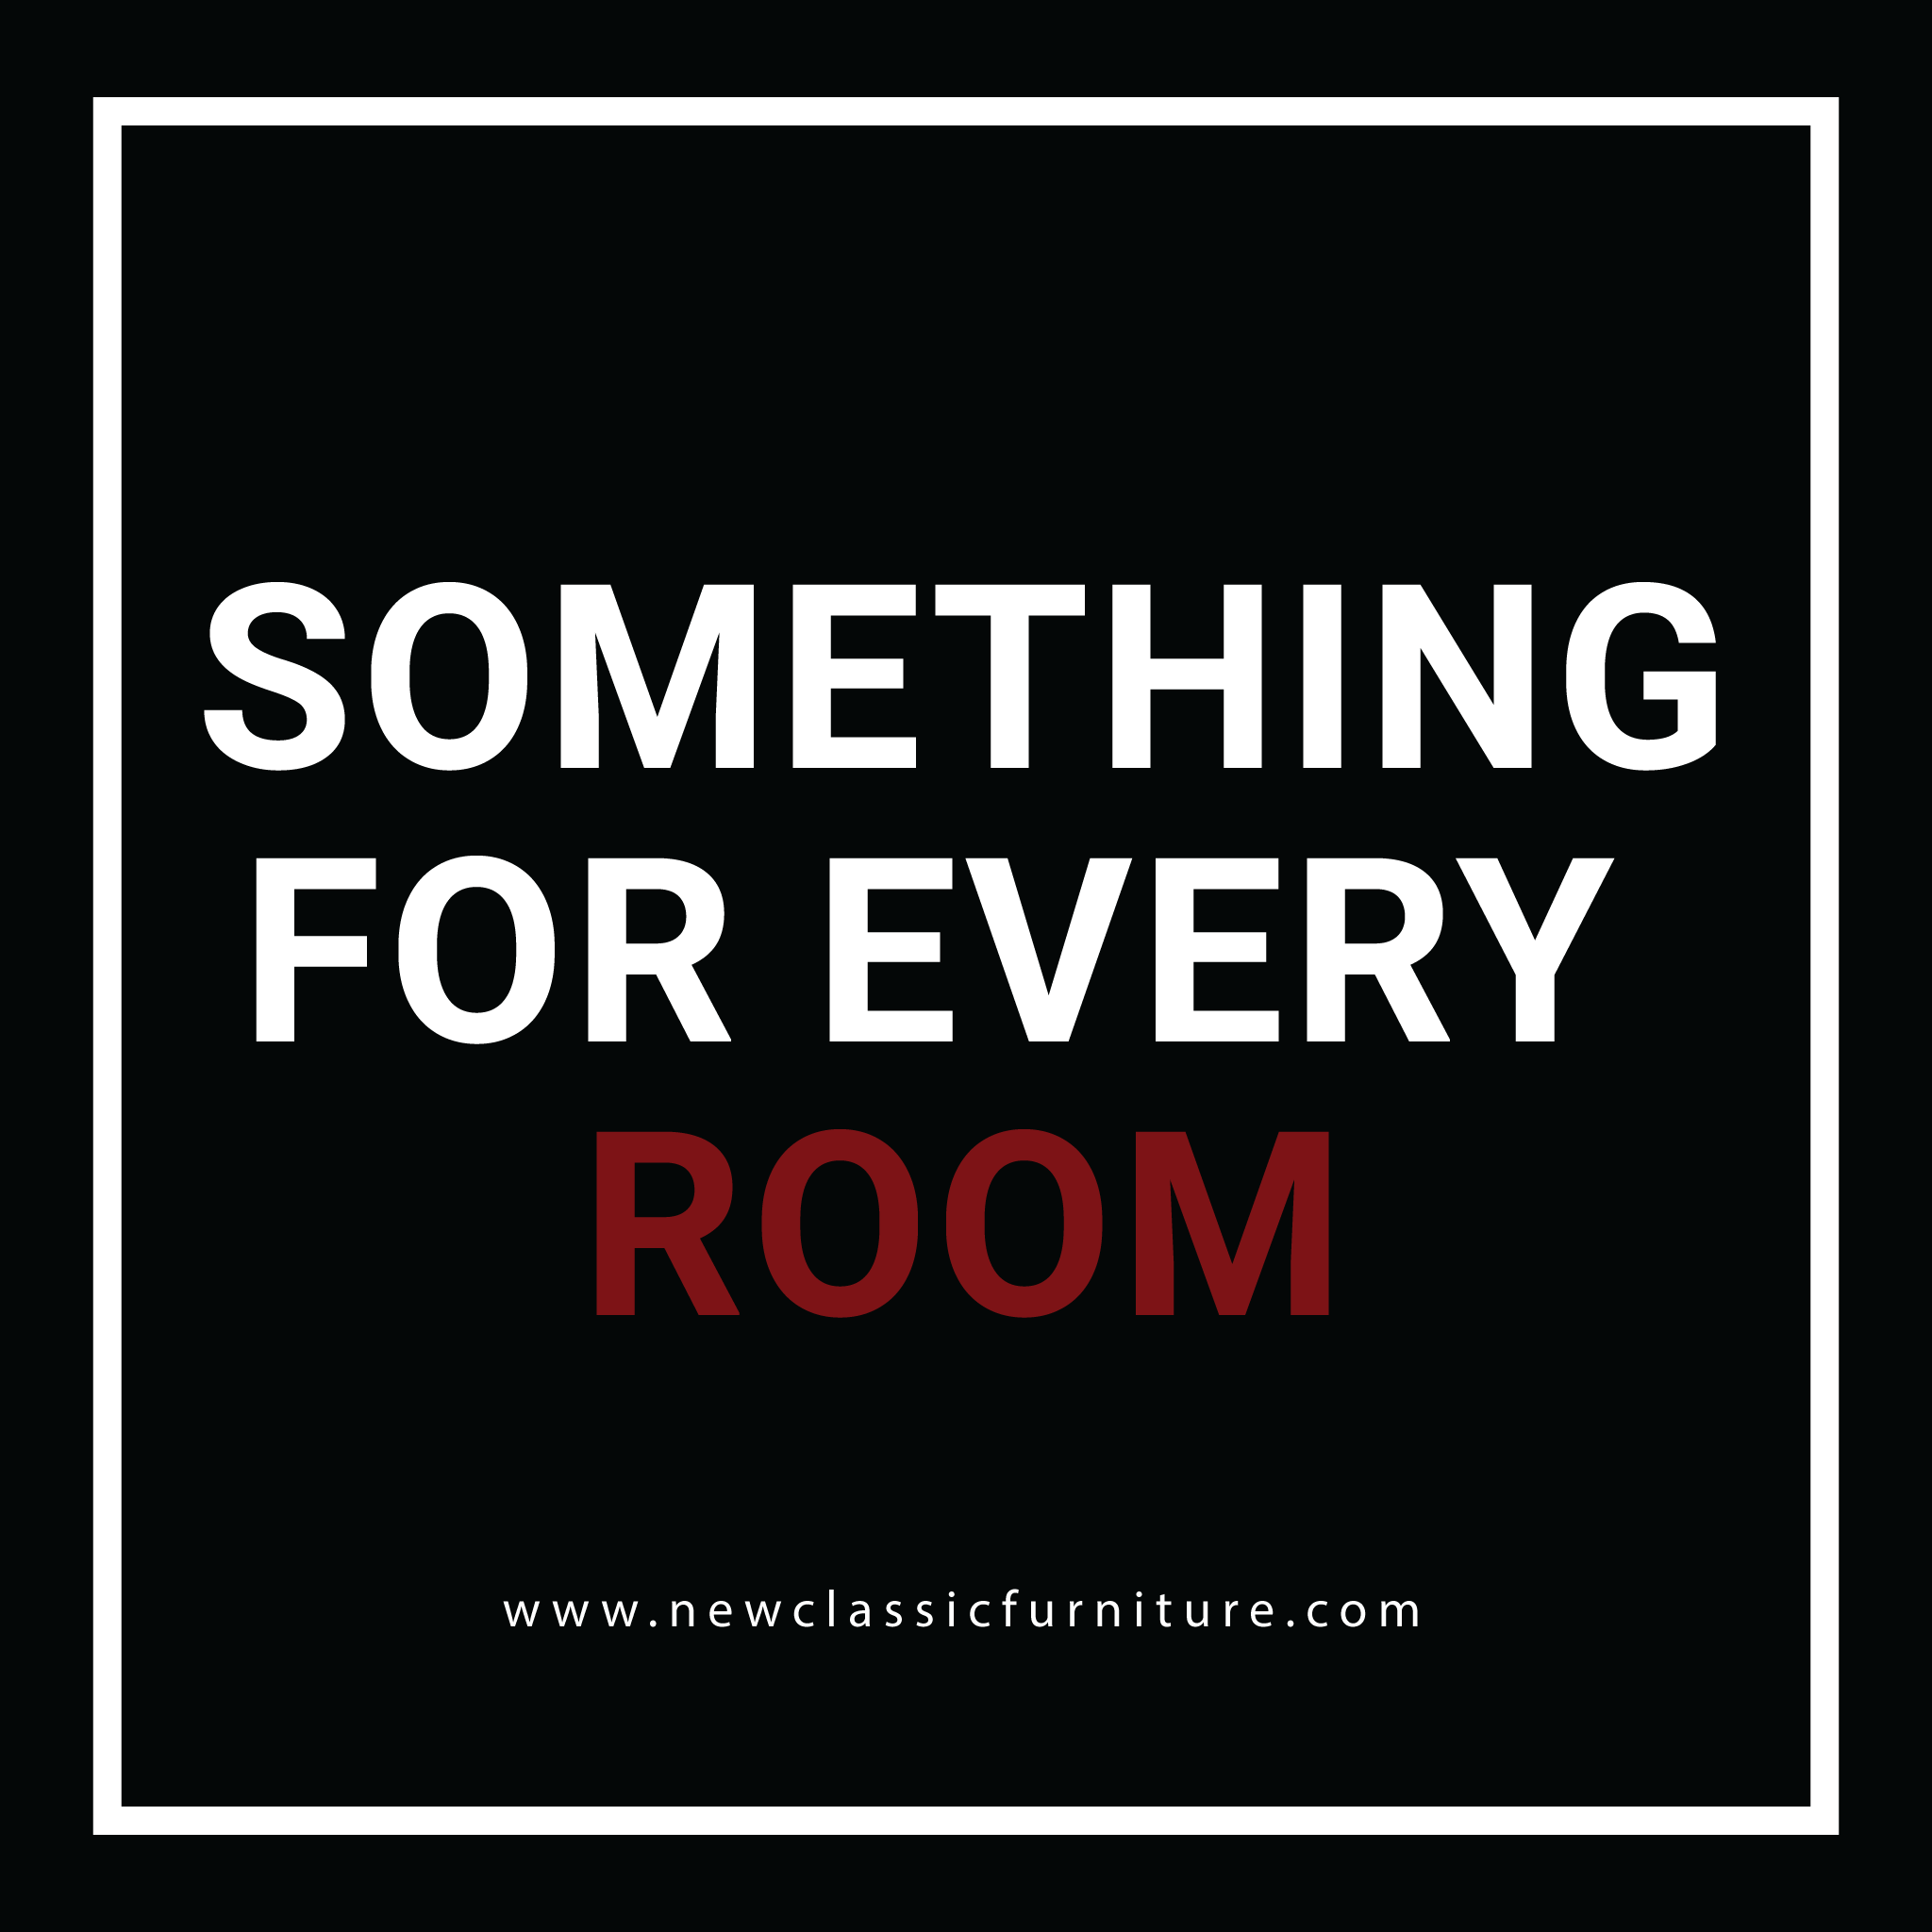 Something For Every Room